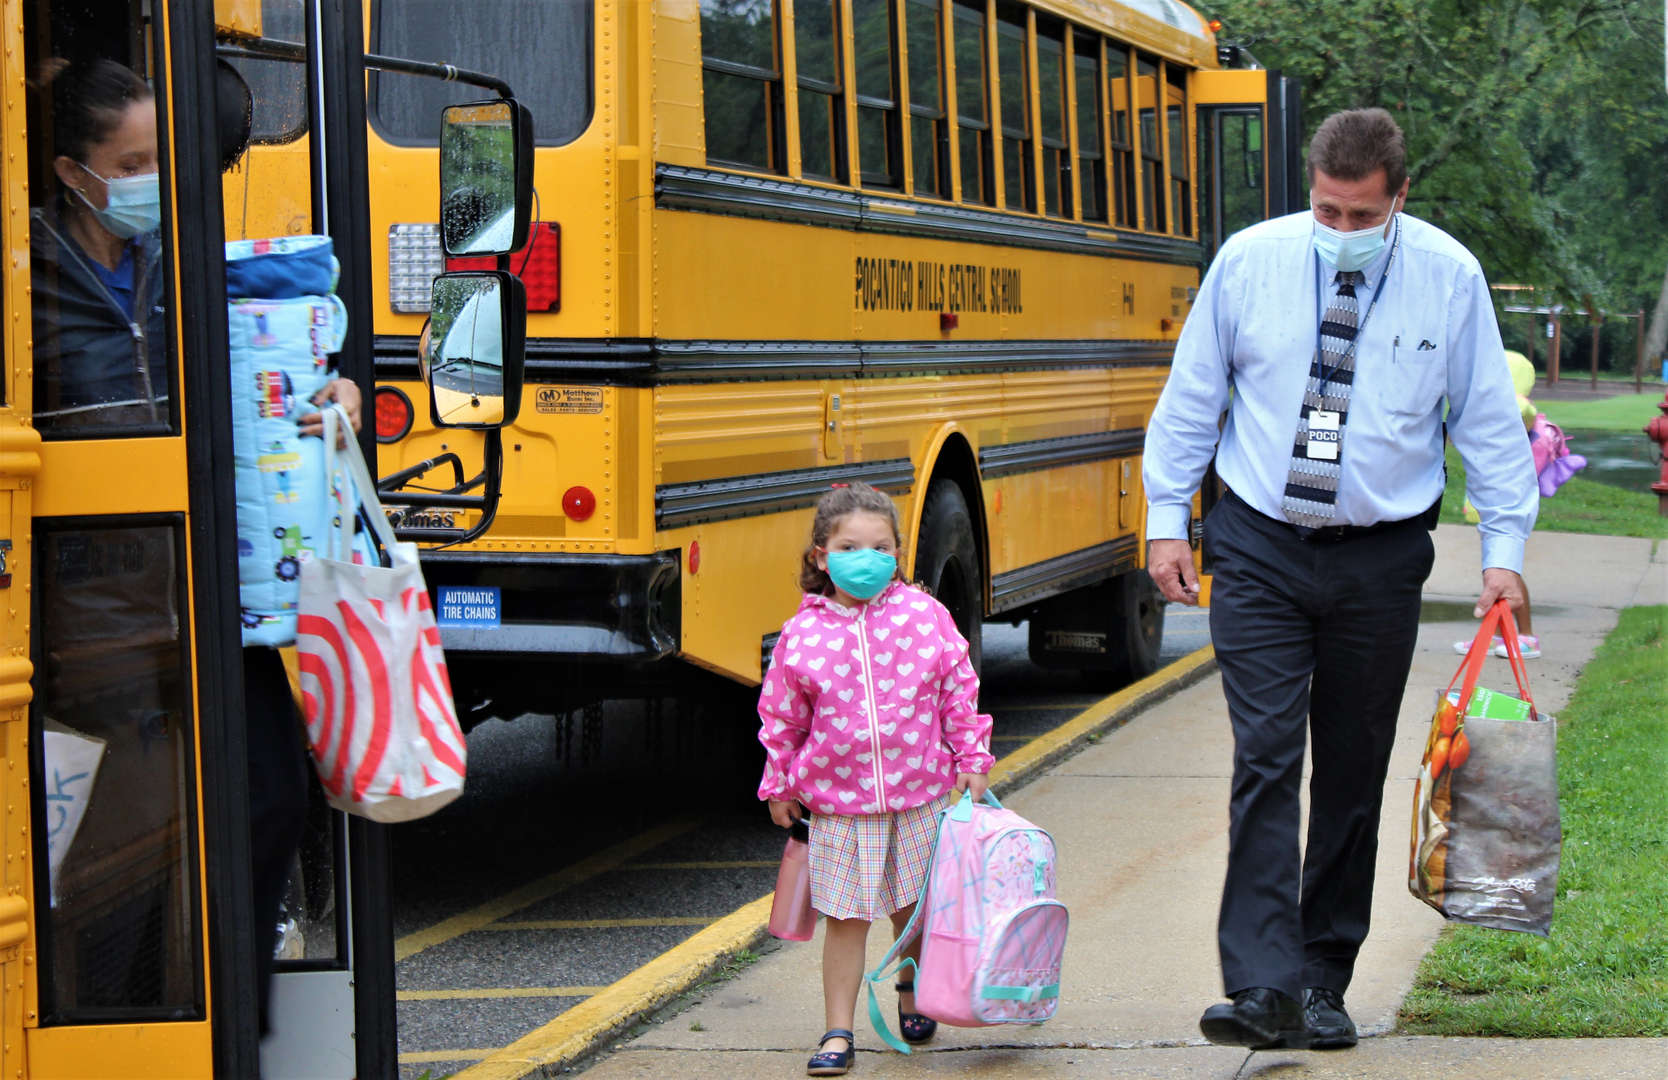 Facilities Director Donald Booth helps a young girl off the school bus.